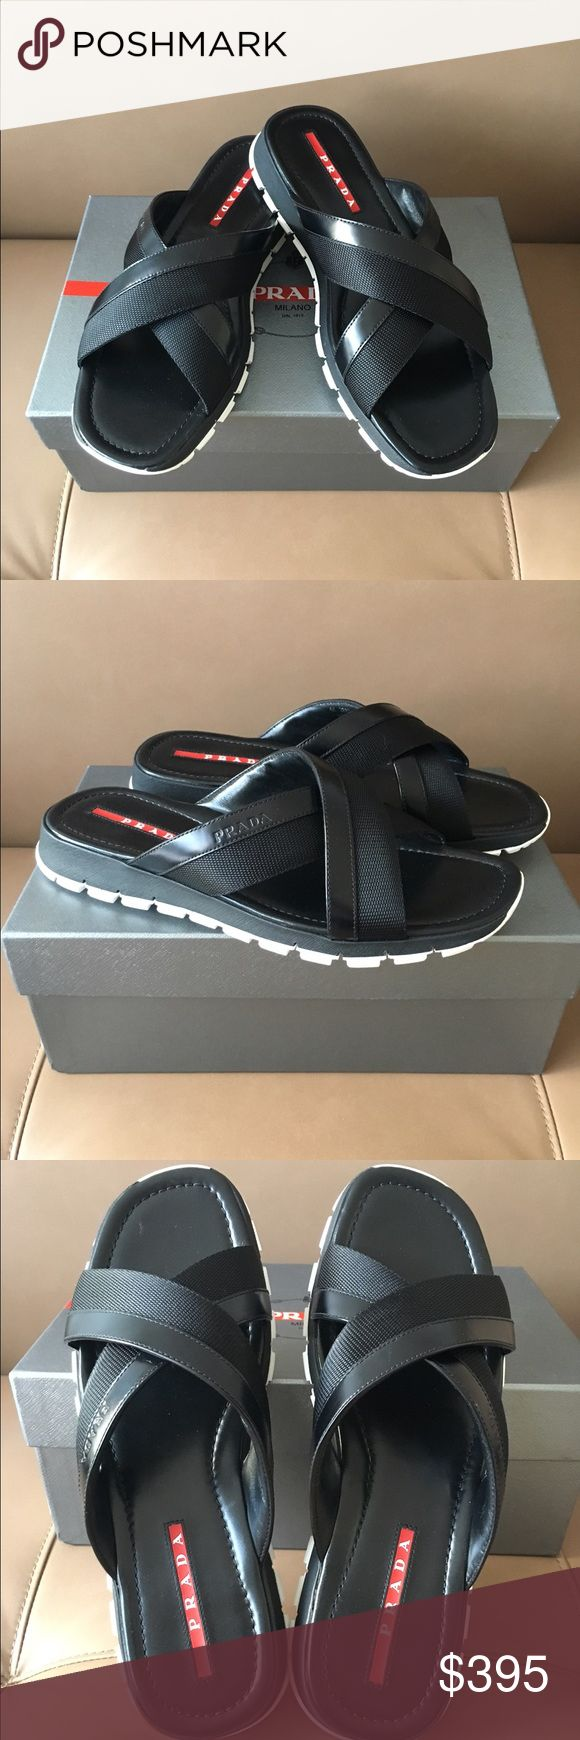 Prada Black Leather Sandals in size 11 UK--12 US Nib , 100% authentic Prada black leather & canvas sandals on size 11 UK --12 US . Assuming they are true to size . No issues . Retail -$595 plus tax . Sorry , no trading -:(. Thanks ! Prada Shoes Sandals & Flip-Flops